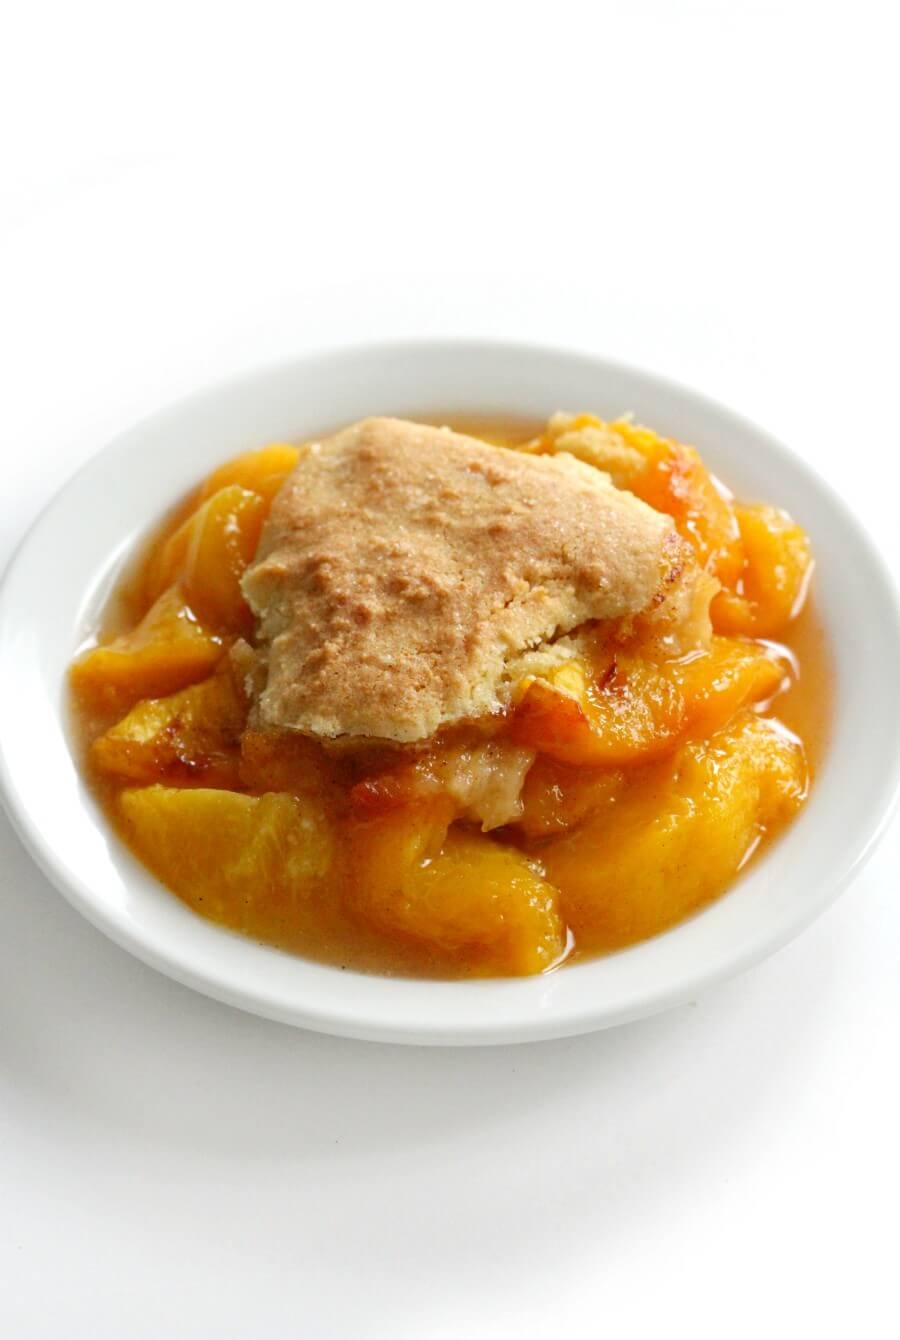 single serving of gluten-free peach cobbler on white plate